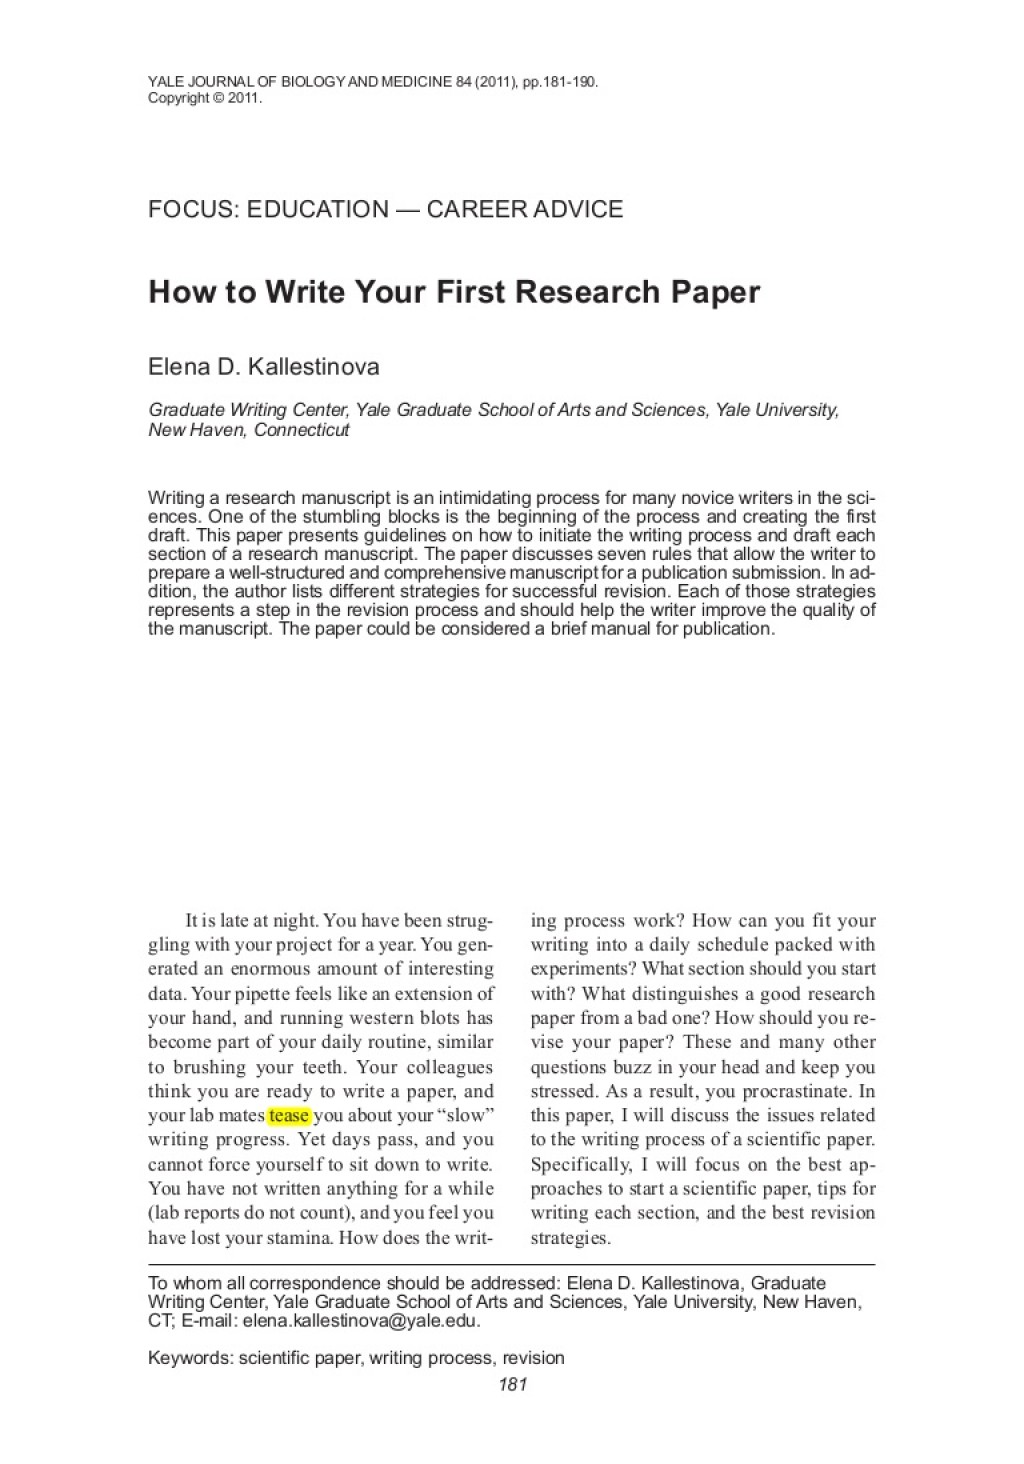 013 How To Write Research Papers Paper Howtowriteyourfirstresearchpaper Lva1 App6891 Thumbnail Best A - Pdf (2015) Conclusion An Introduction And Large